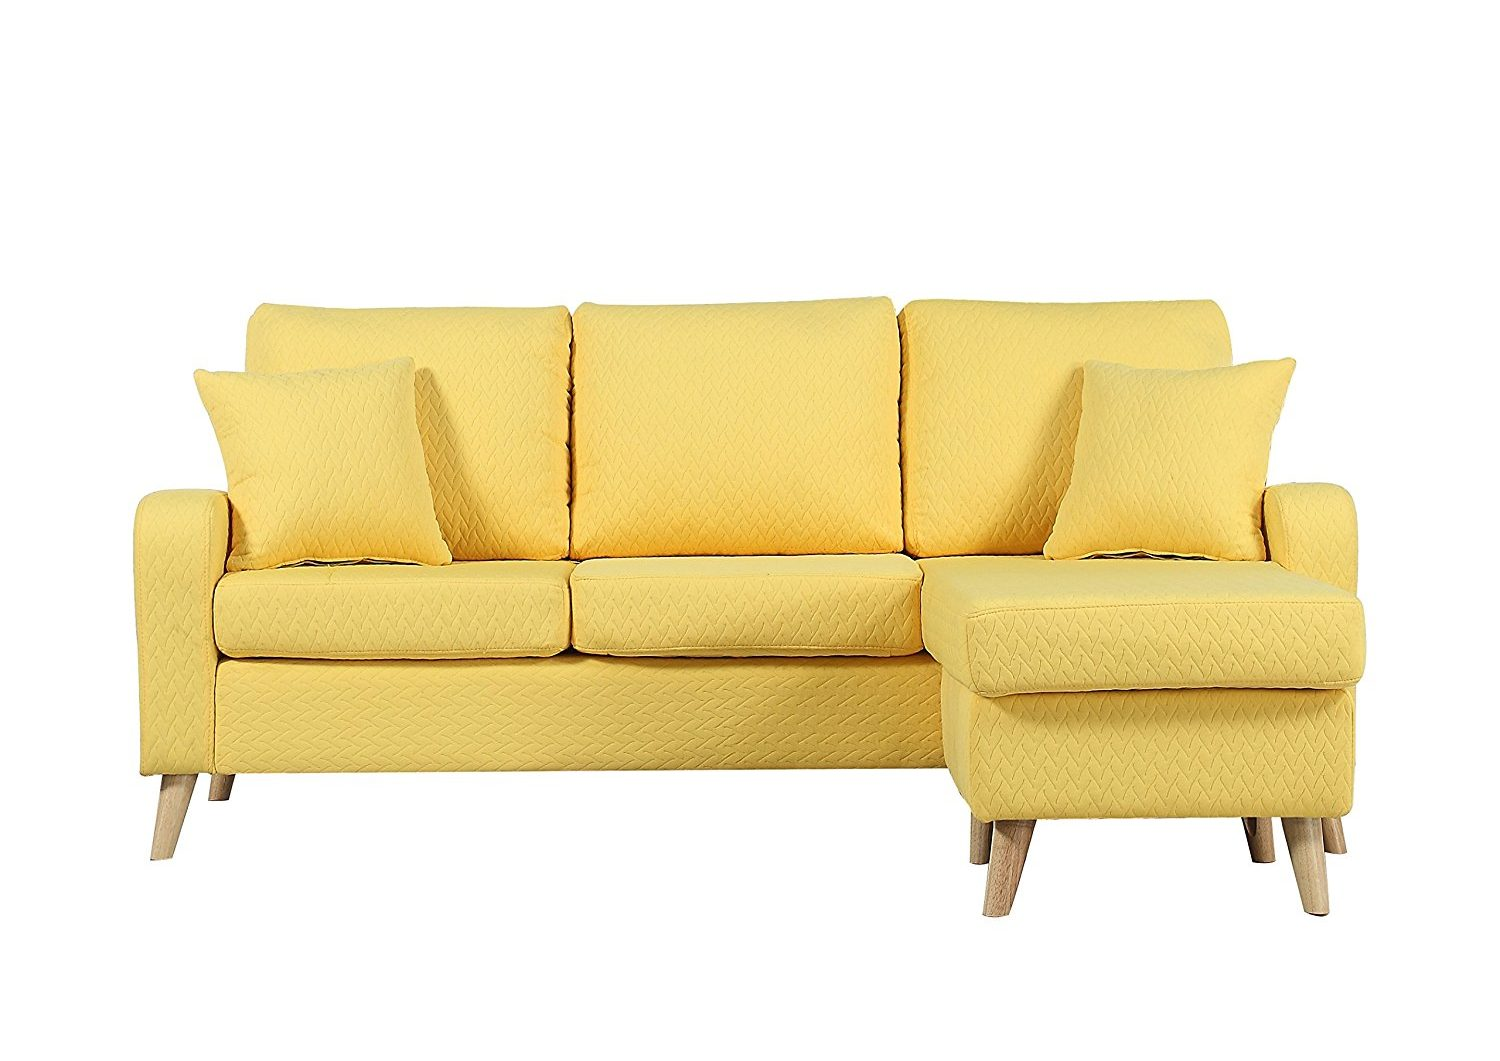 Colorful Sectional   Best RV Furniture   Sofas Or Couches For Motorhomes,  Campers, And